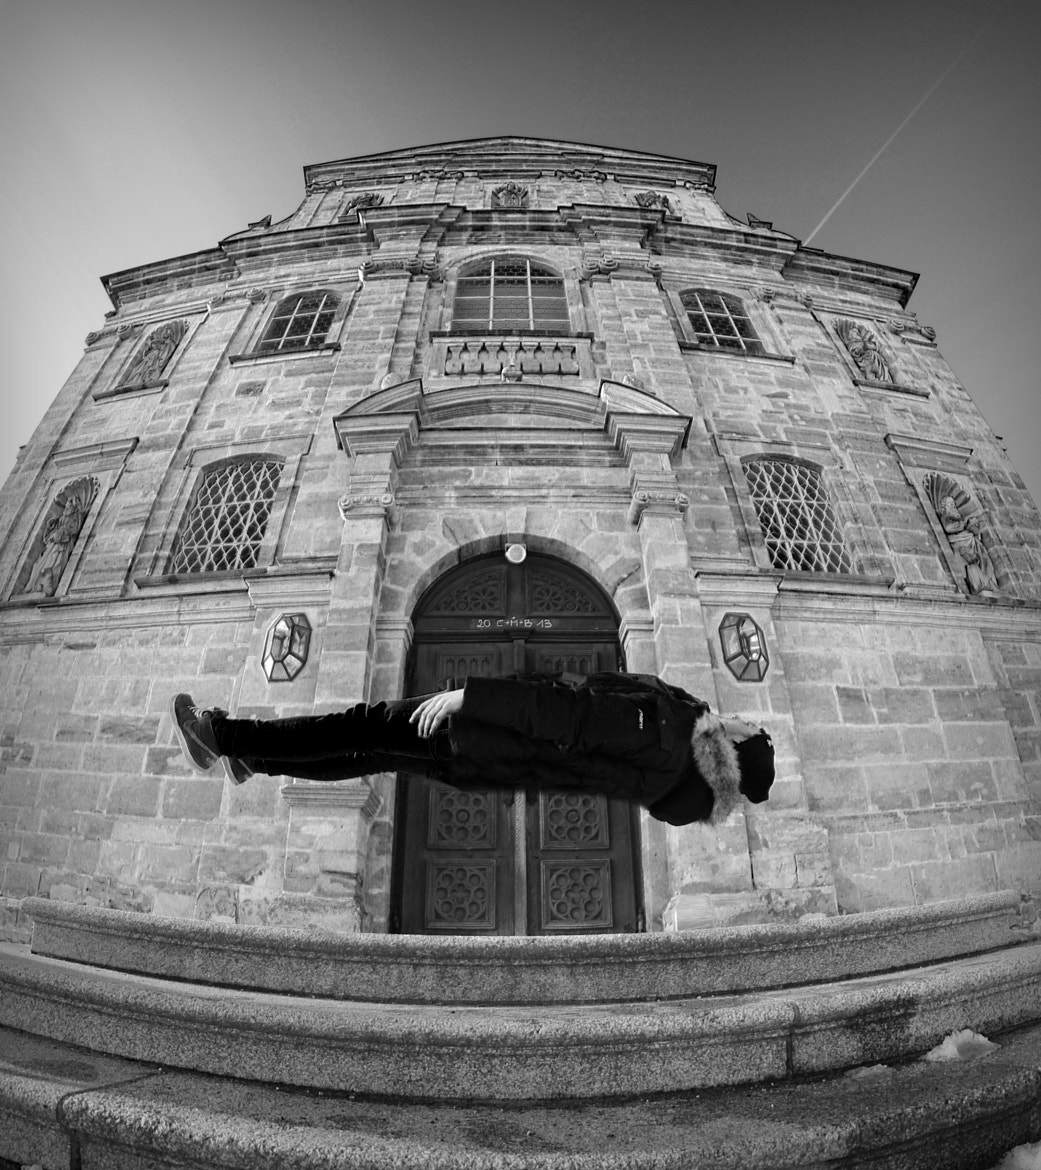 Photograph ∞ weightless ∞ by Christopher  Hassler on 500px